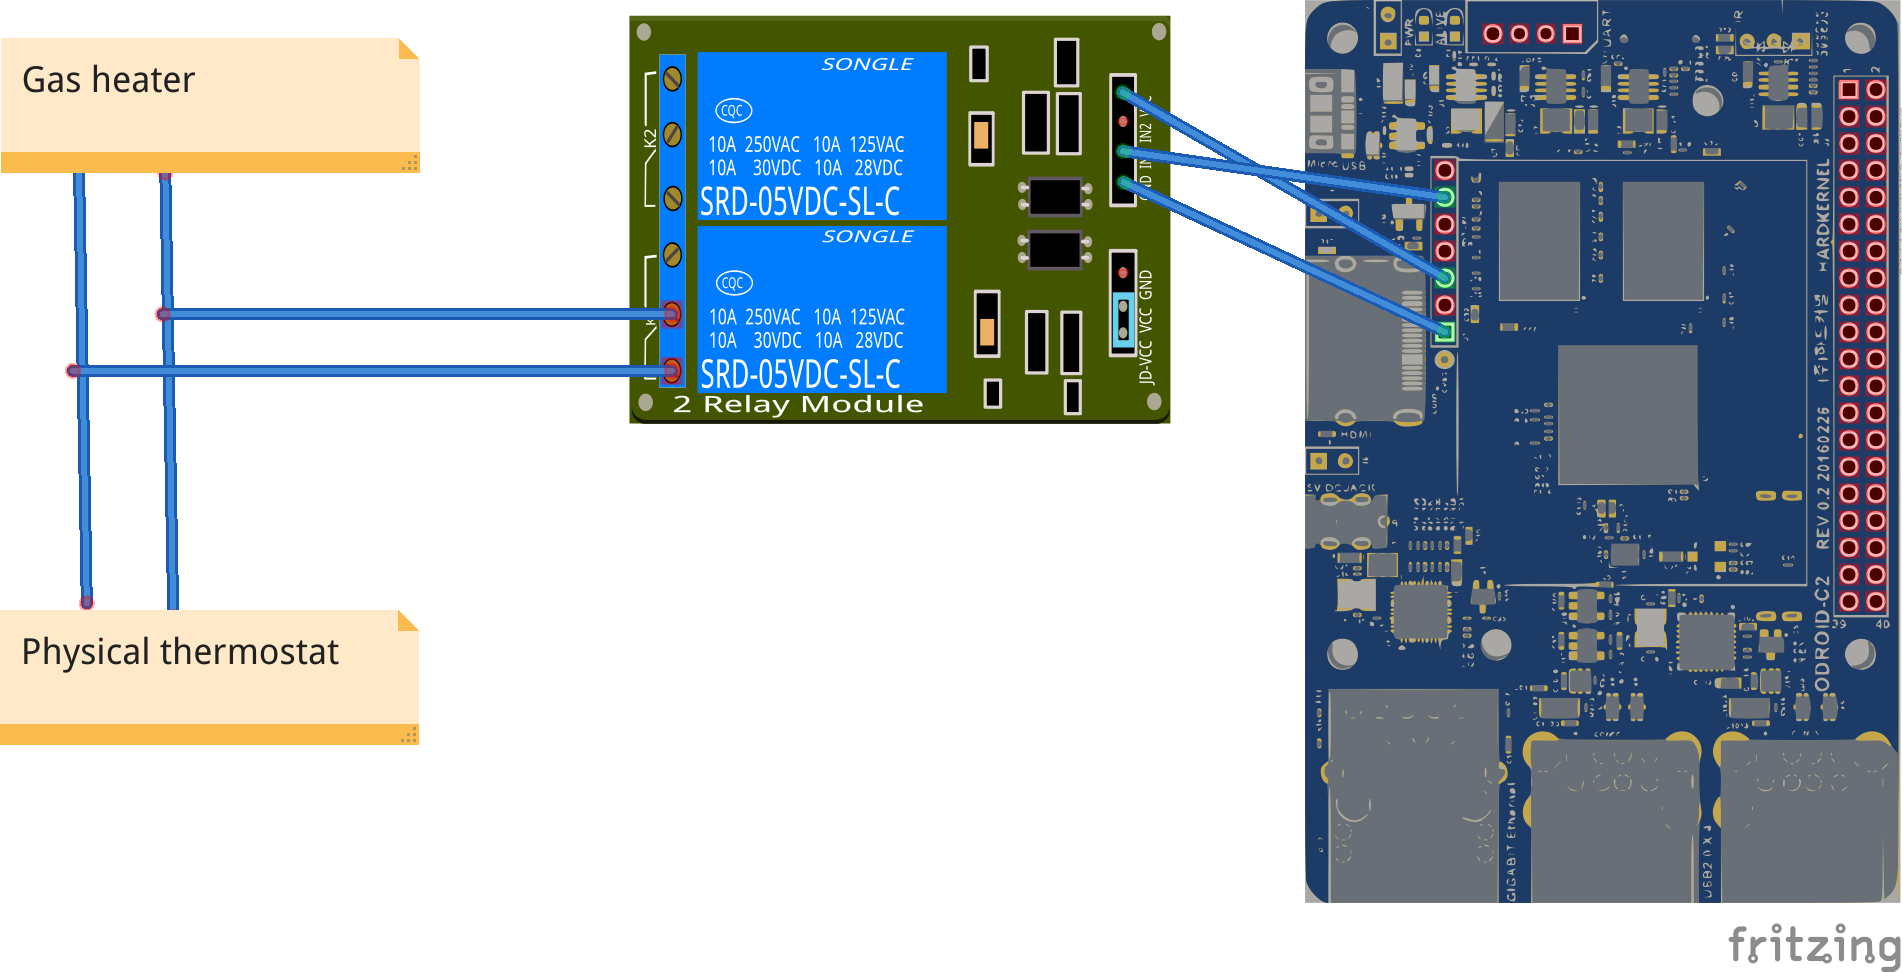 Home Assistant : Using Infrared, Motors, and Relays: Figure 7 - Implementation details